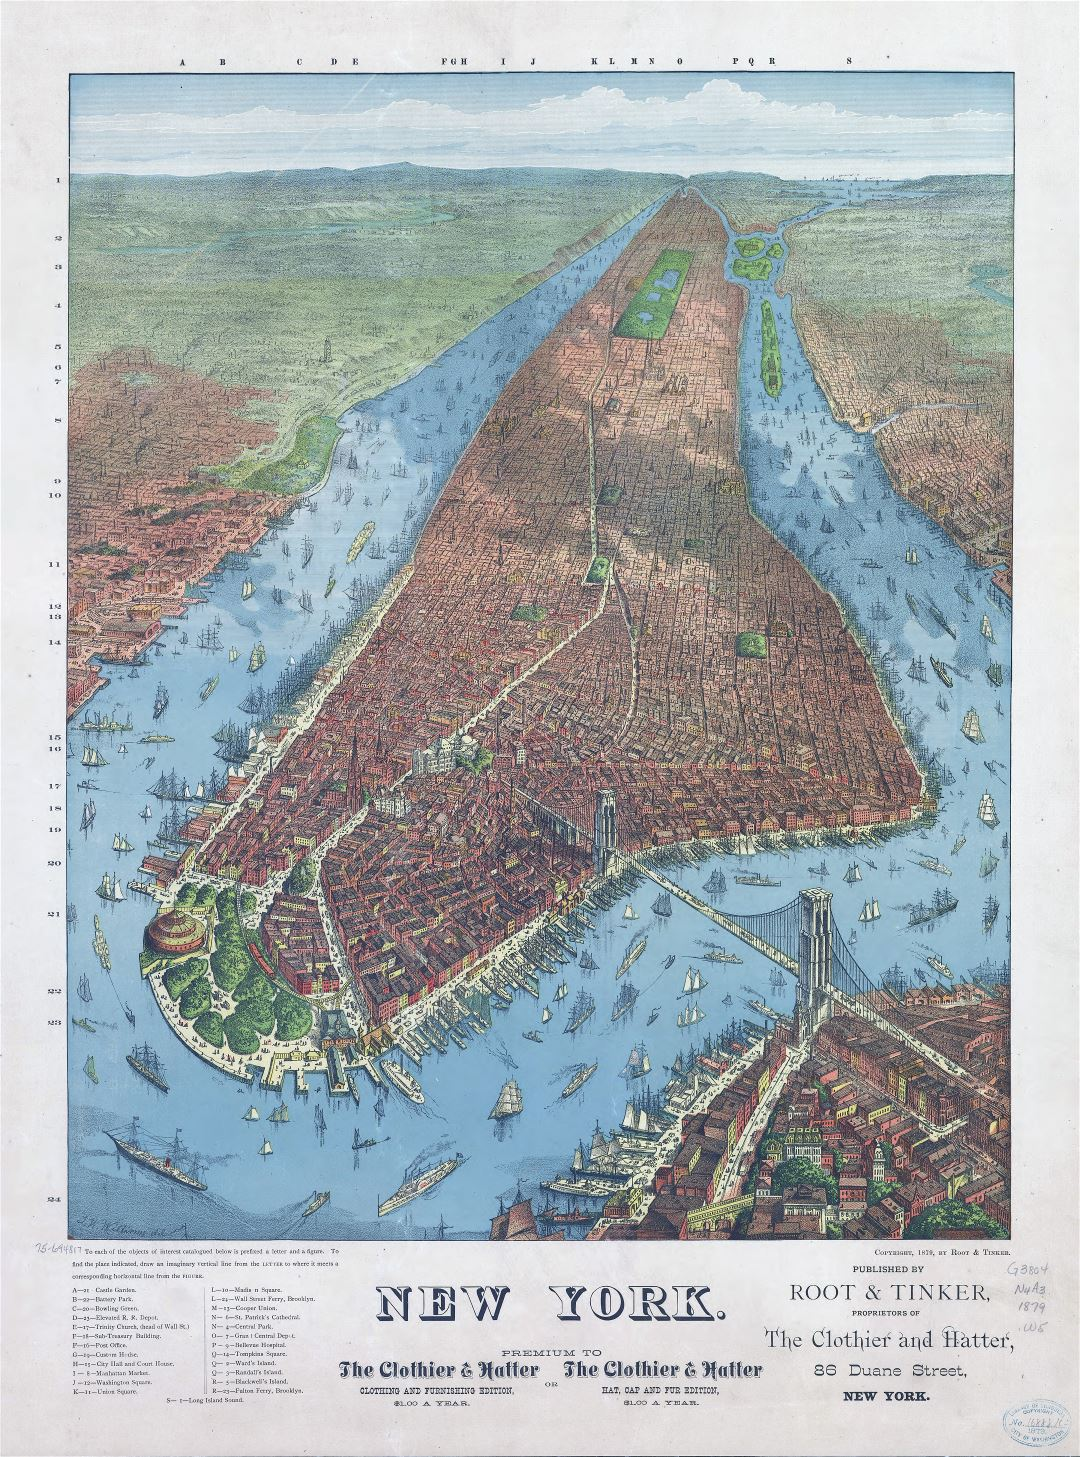 Large scale old panoramic map of New York city - 1879